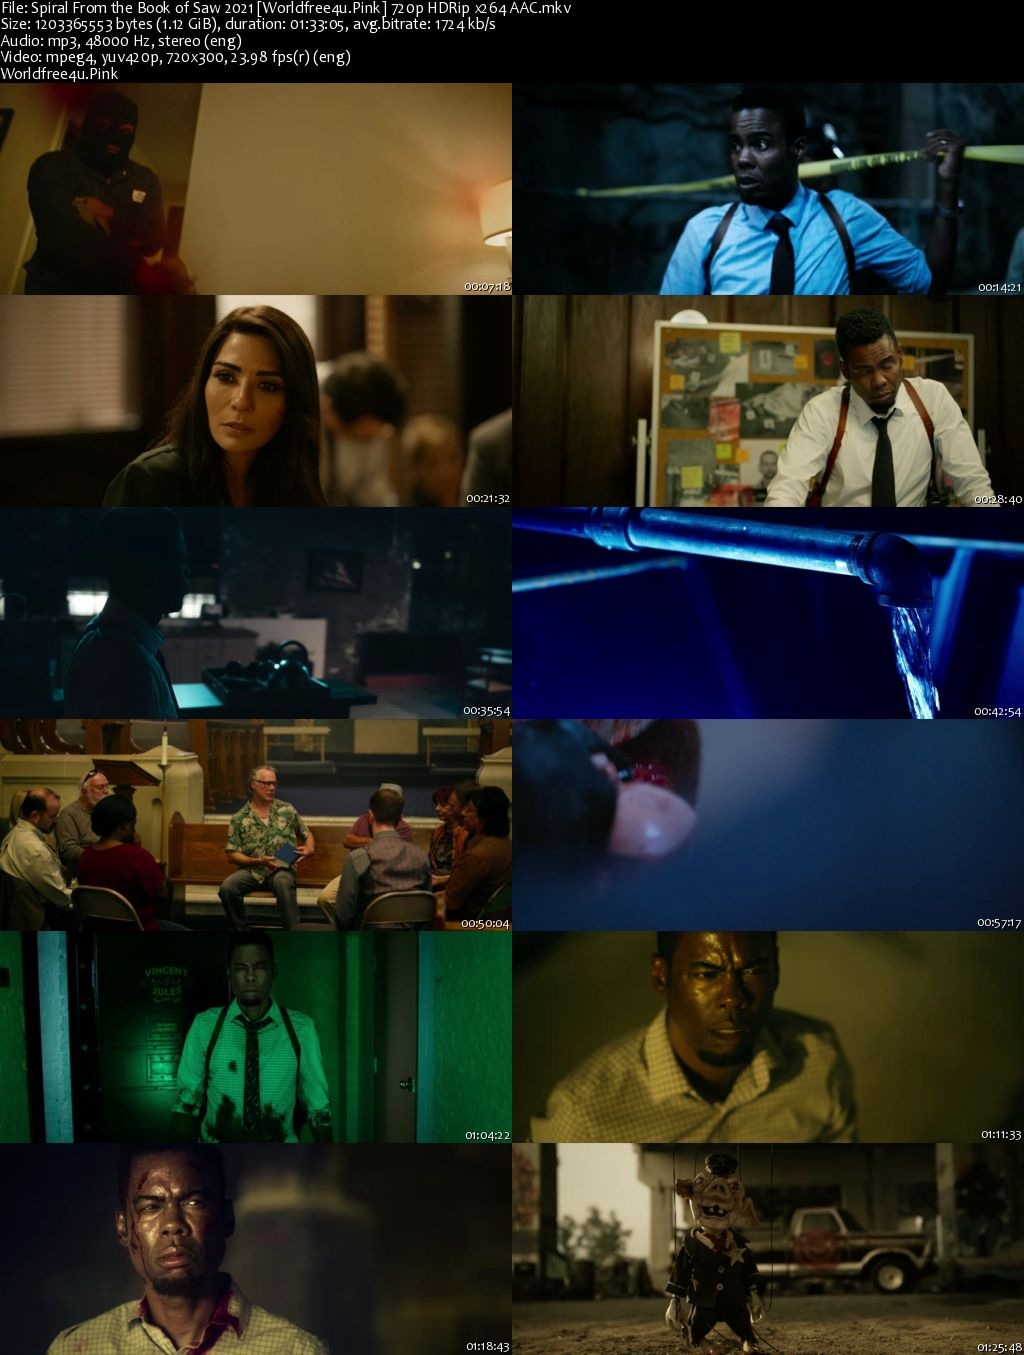 Spiral: From the Book of Saw 2021 English HDRip 720p